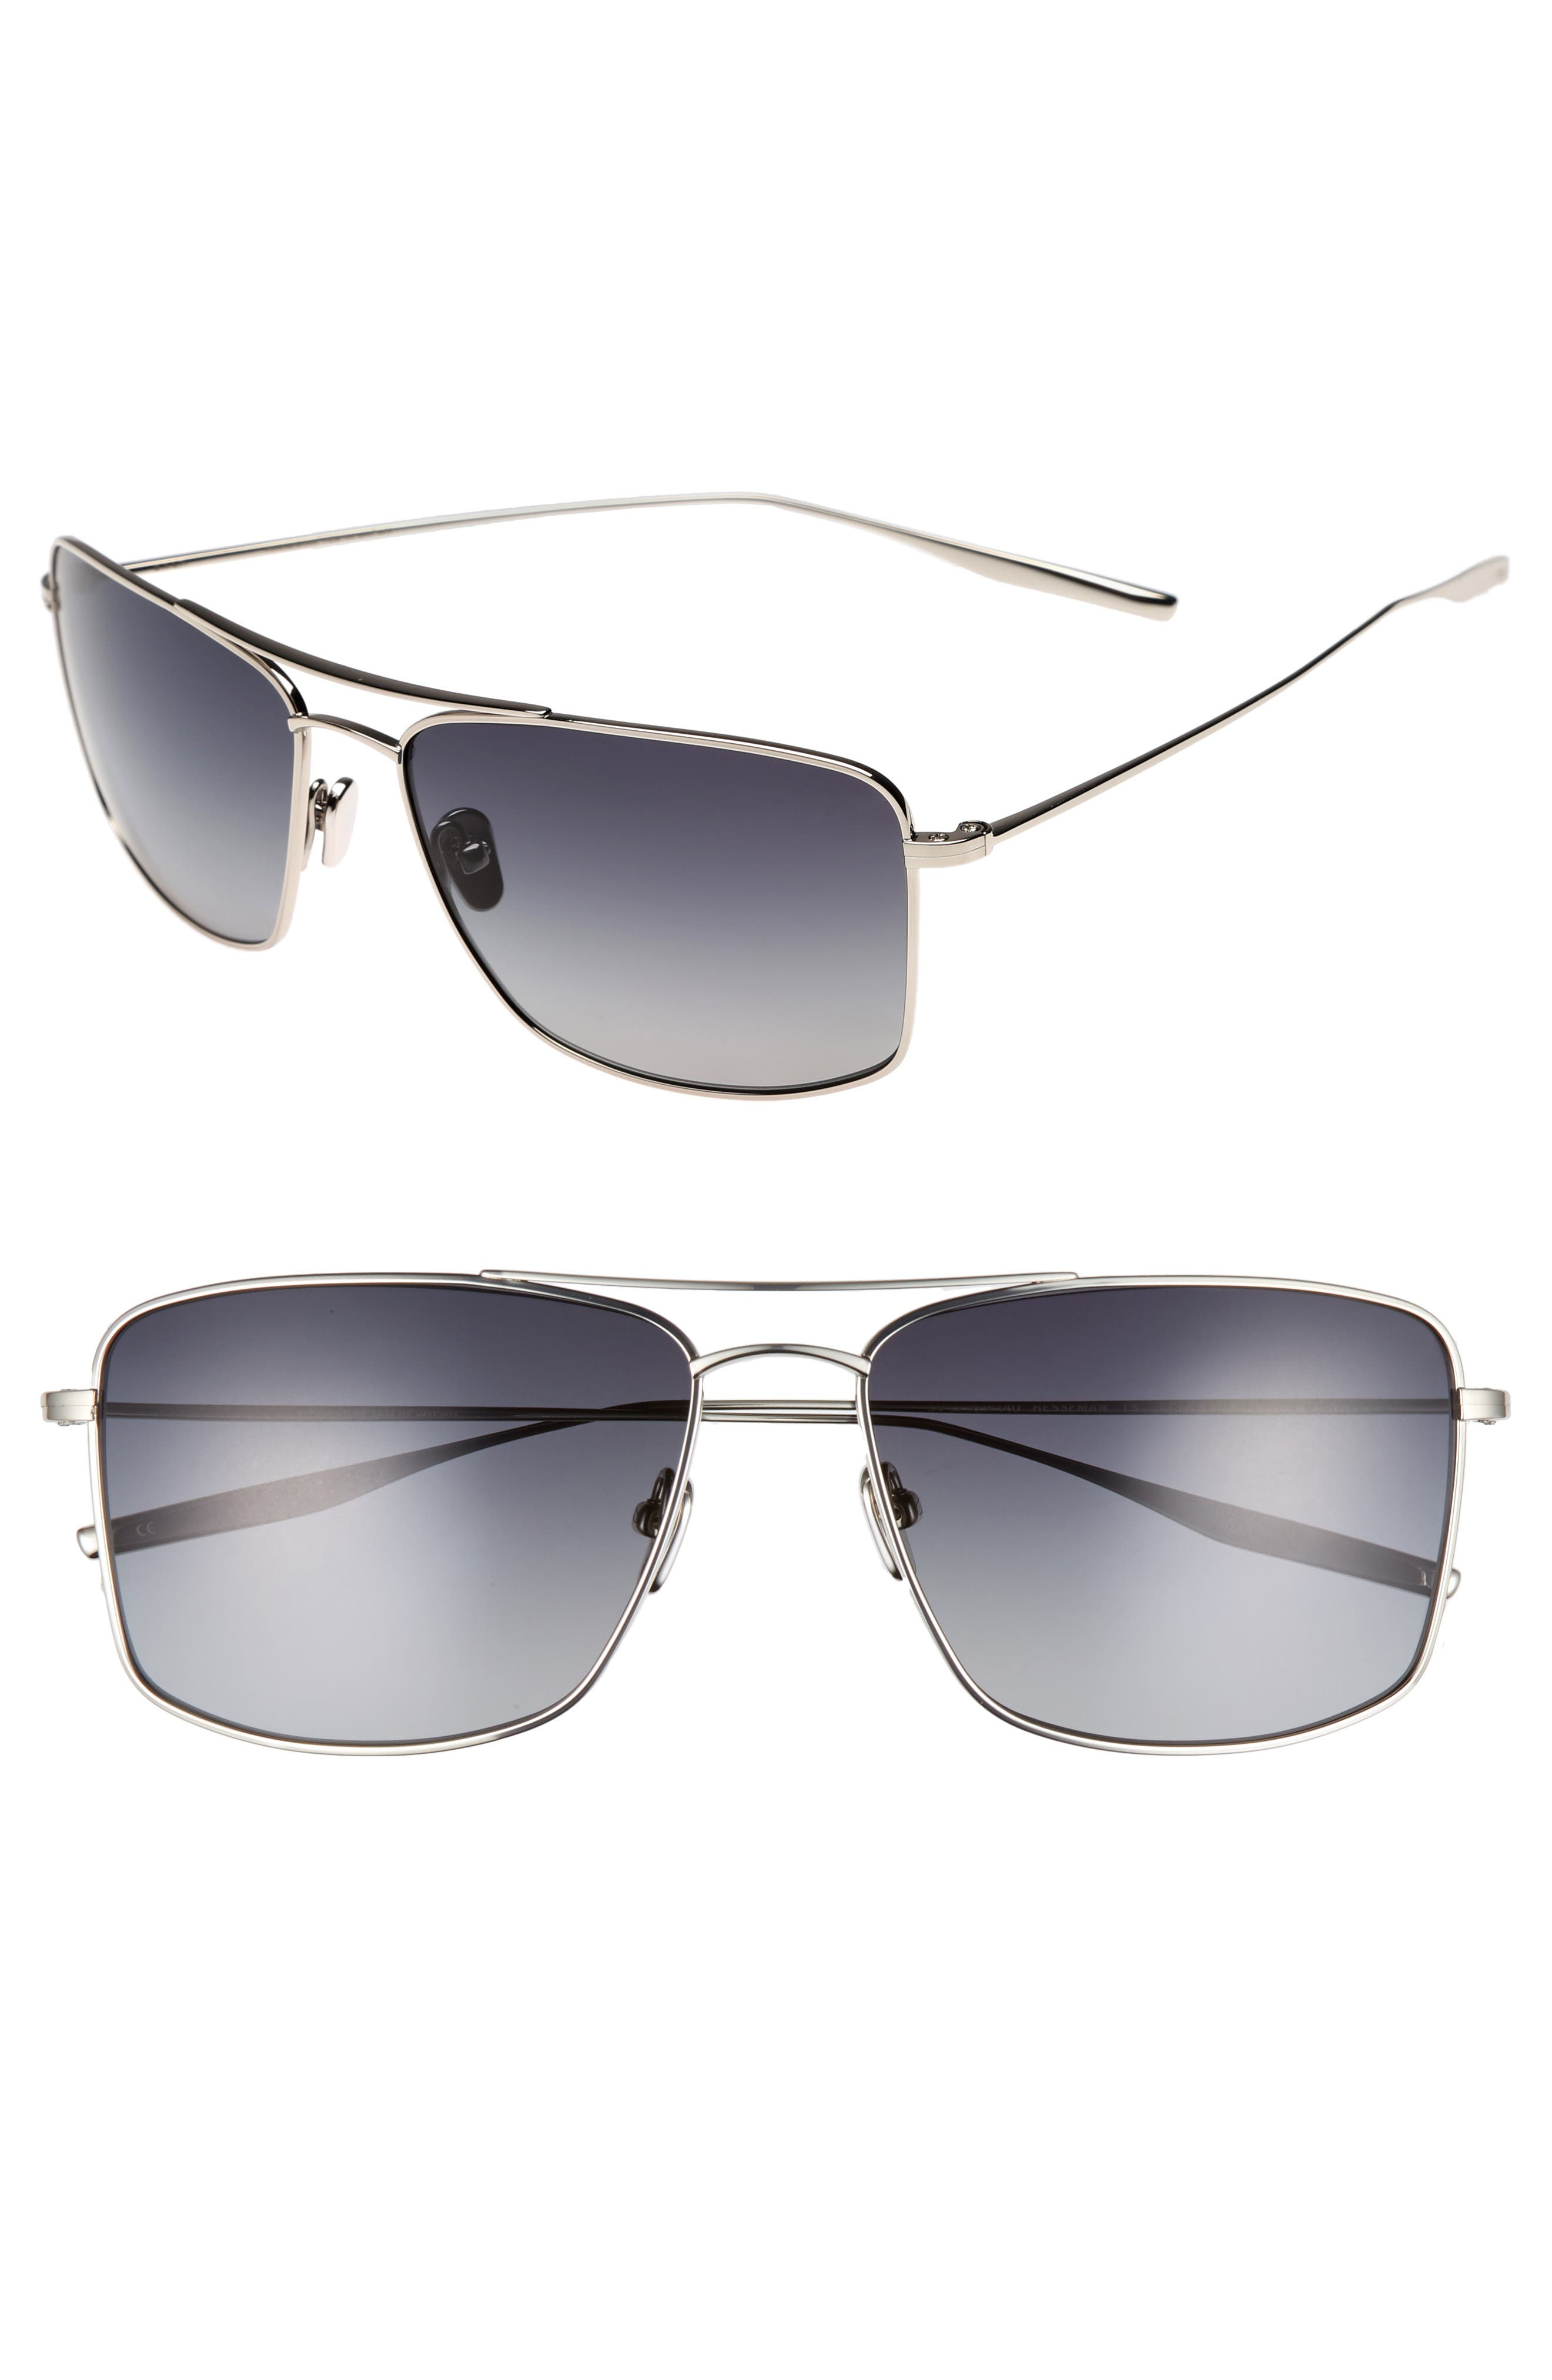 Hesseman 59mm Polarized Sunglasses,                         Main,                         color, TRADITIONAL SILVER